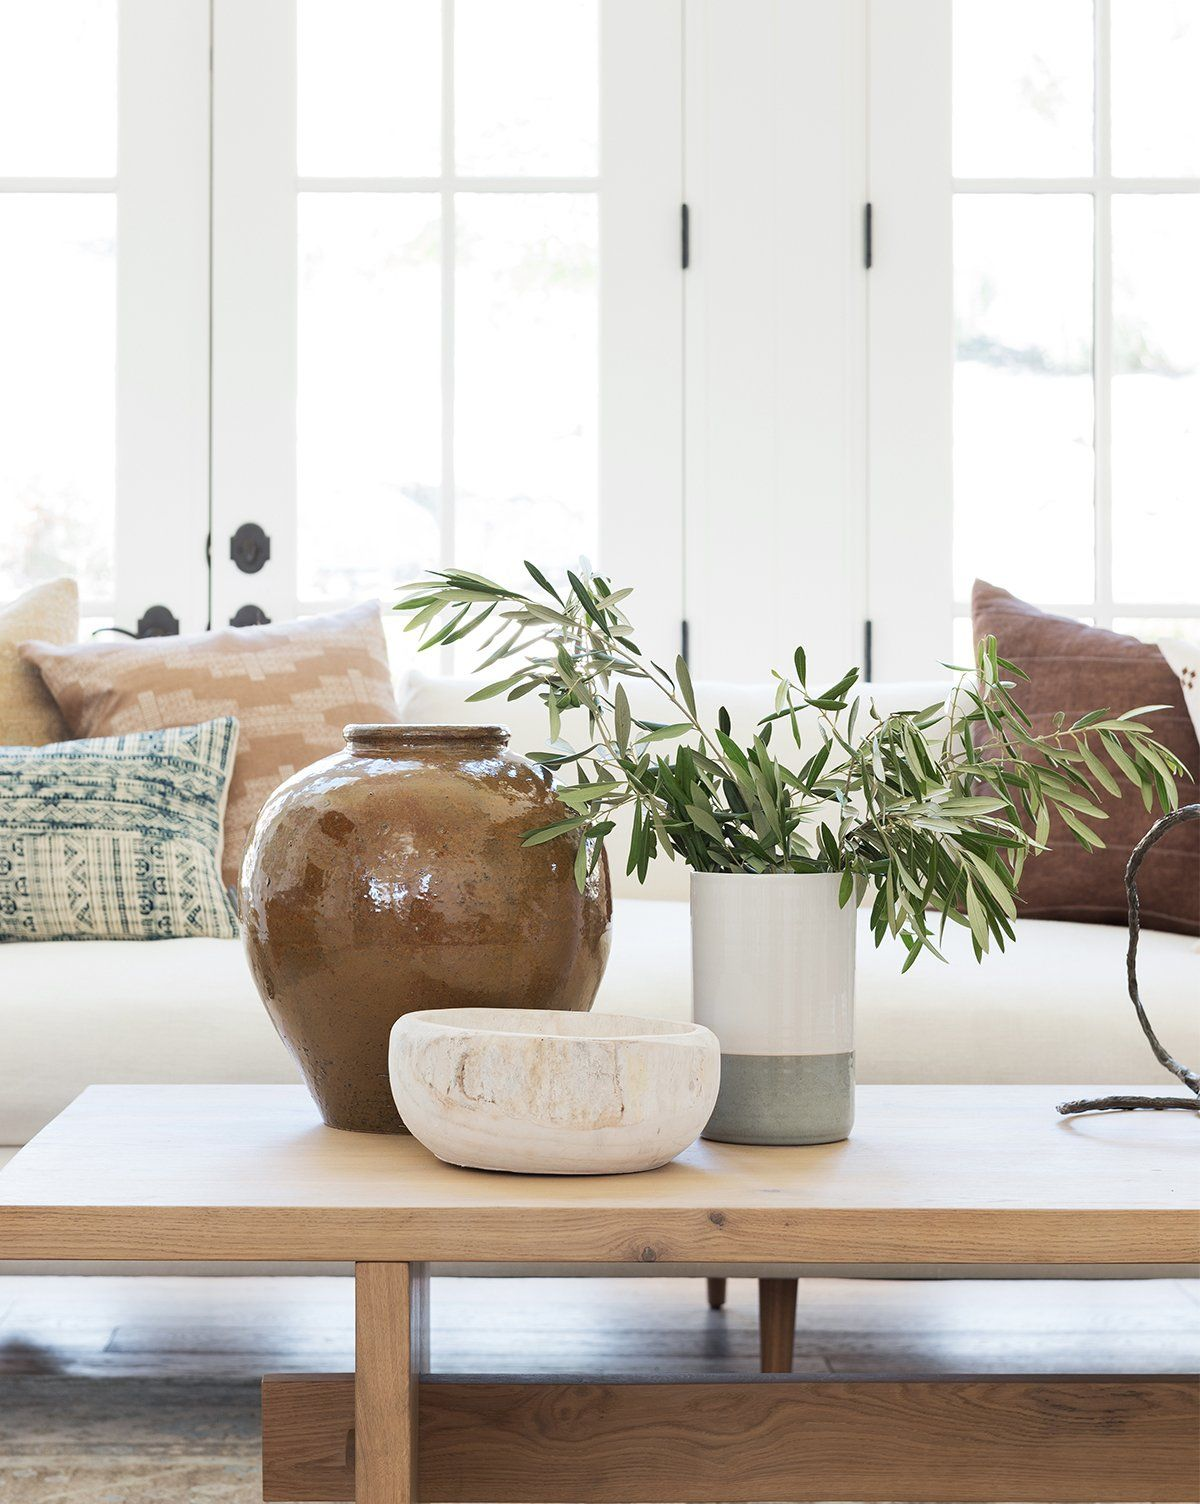 Whitewashed Wooden Bowl In 2021 Wooden Bowls Decor Decor Table Decor Living Room [ 1504 x 1200 Pixel ]